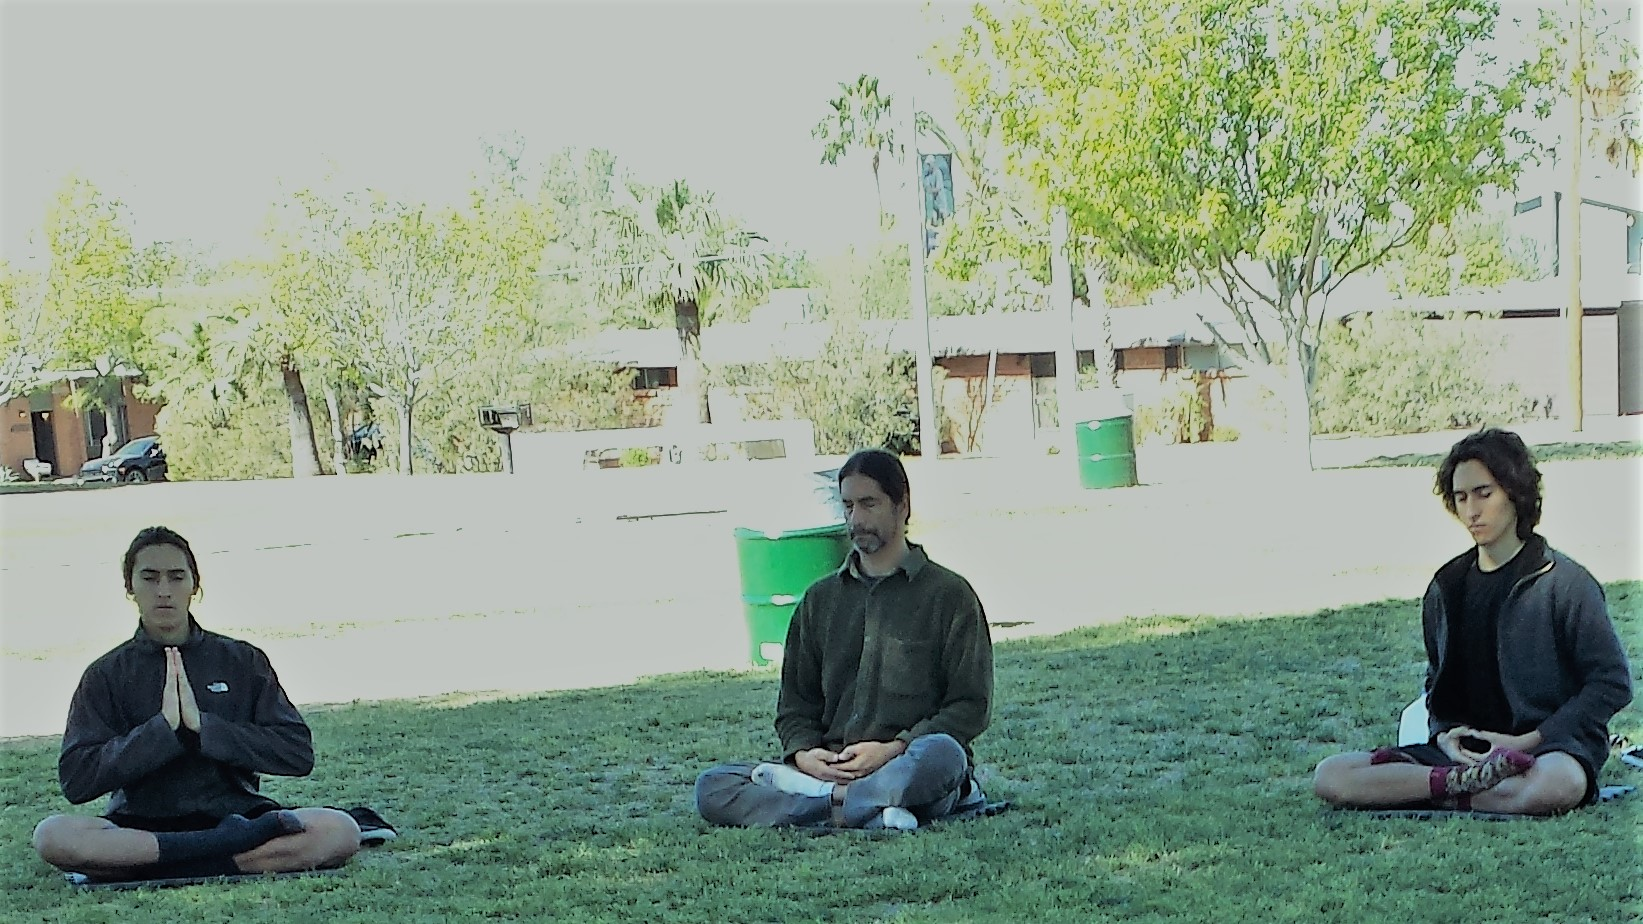 Falun Dafa Exercises Himmel Park Tucson Arizona April 30, 2017